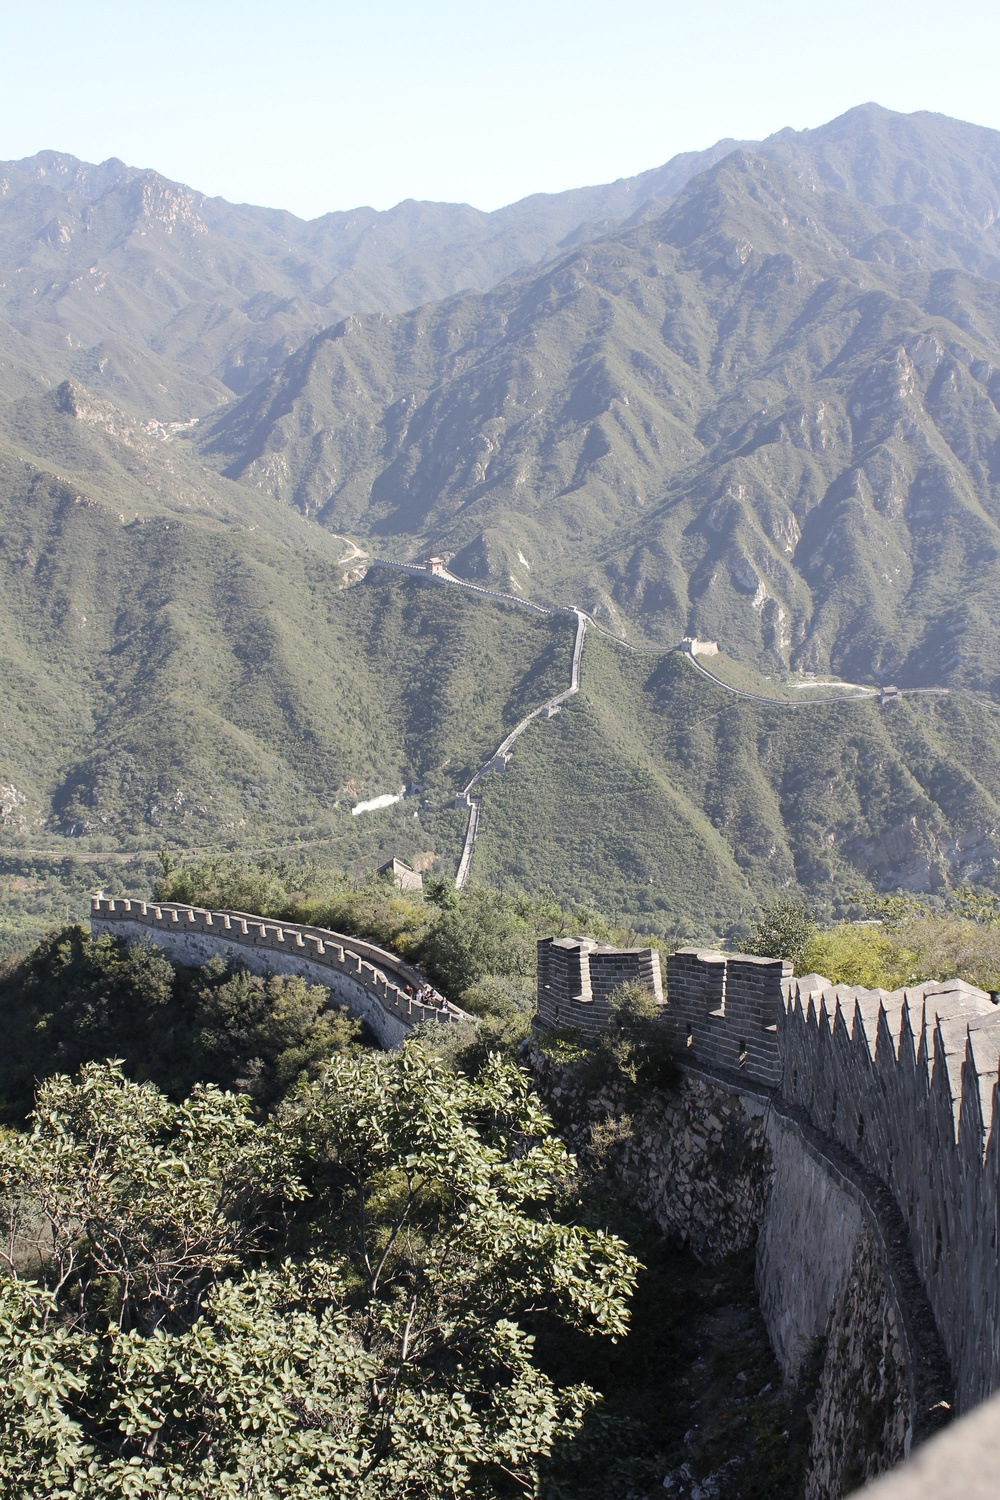 "Atop the Great Wall.                          0     false             18 pt     18 pt     0     0         false     false     false                                                          /* Style Definitions */ table.MsoNormalTable 	{mso-style-name:""Table Normal""; 	mso-tstyle-rowband-size:0; 	mso-tstyle-colband-size:0; 	mso-style-noshow:yes; 	mso-style-parent:""""; 	mso-padding-alt:0in 5.4pt 0in 5.4pt; 	mso-para-margin:0in; 	mso-para-margin-bottom:.0001pt; 	mso-pagination:widow-orphan; 	font-size:12.0pt; 	font-family:""Times New Roman""; 	mso-ascii-font-family:Cambria; 	mso-ascii-theme-font:minor-latin; 	mso-hansi-font-family:Cambria; 	mso-hansi-theme-font:minor-latin;}"